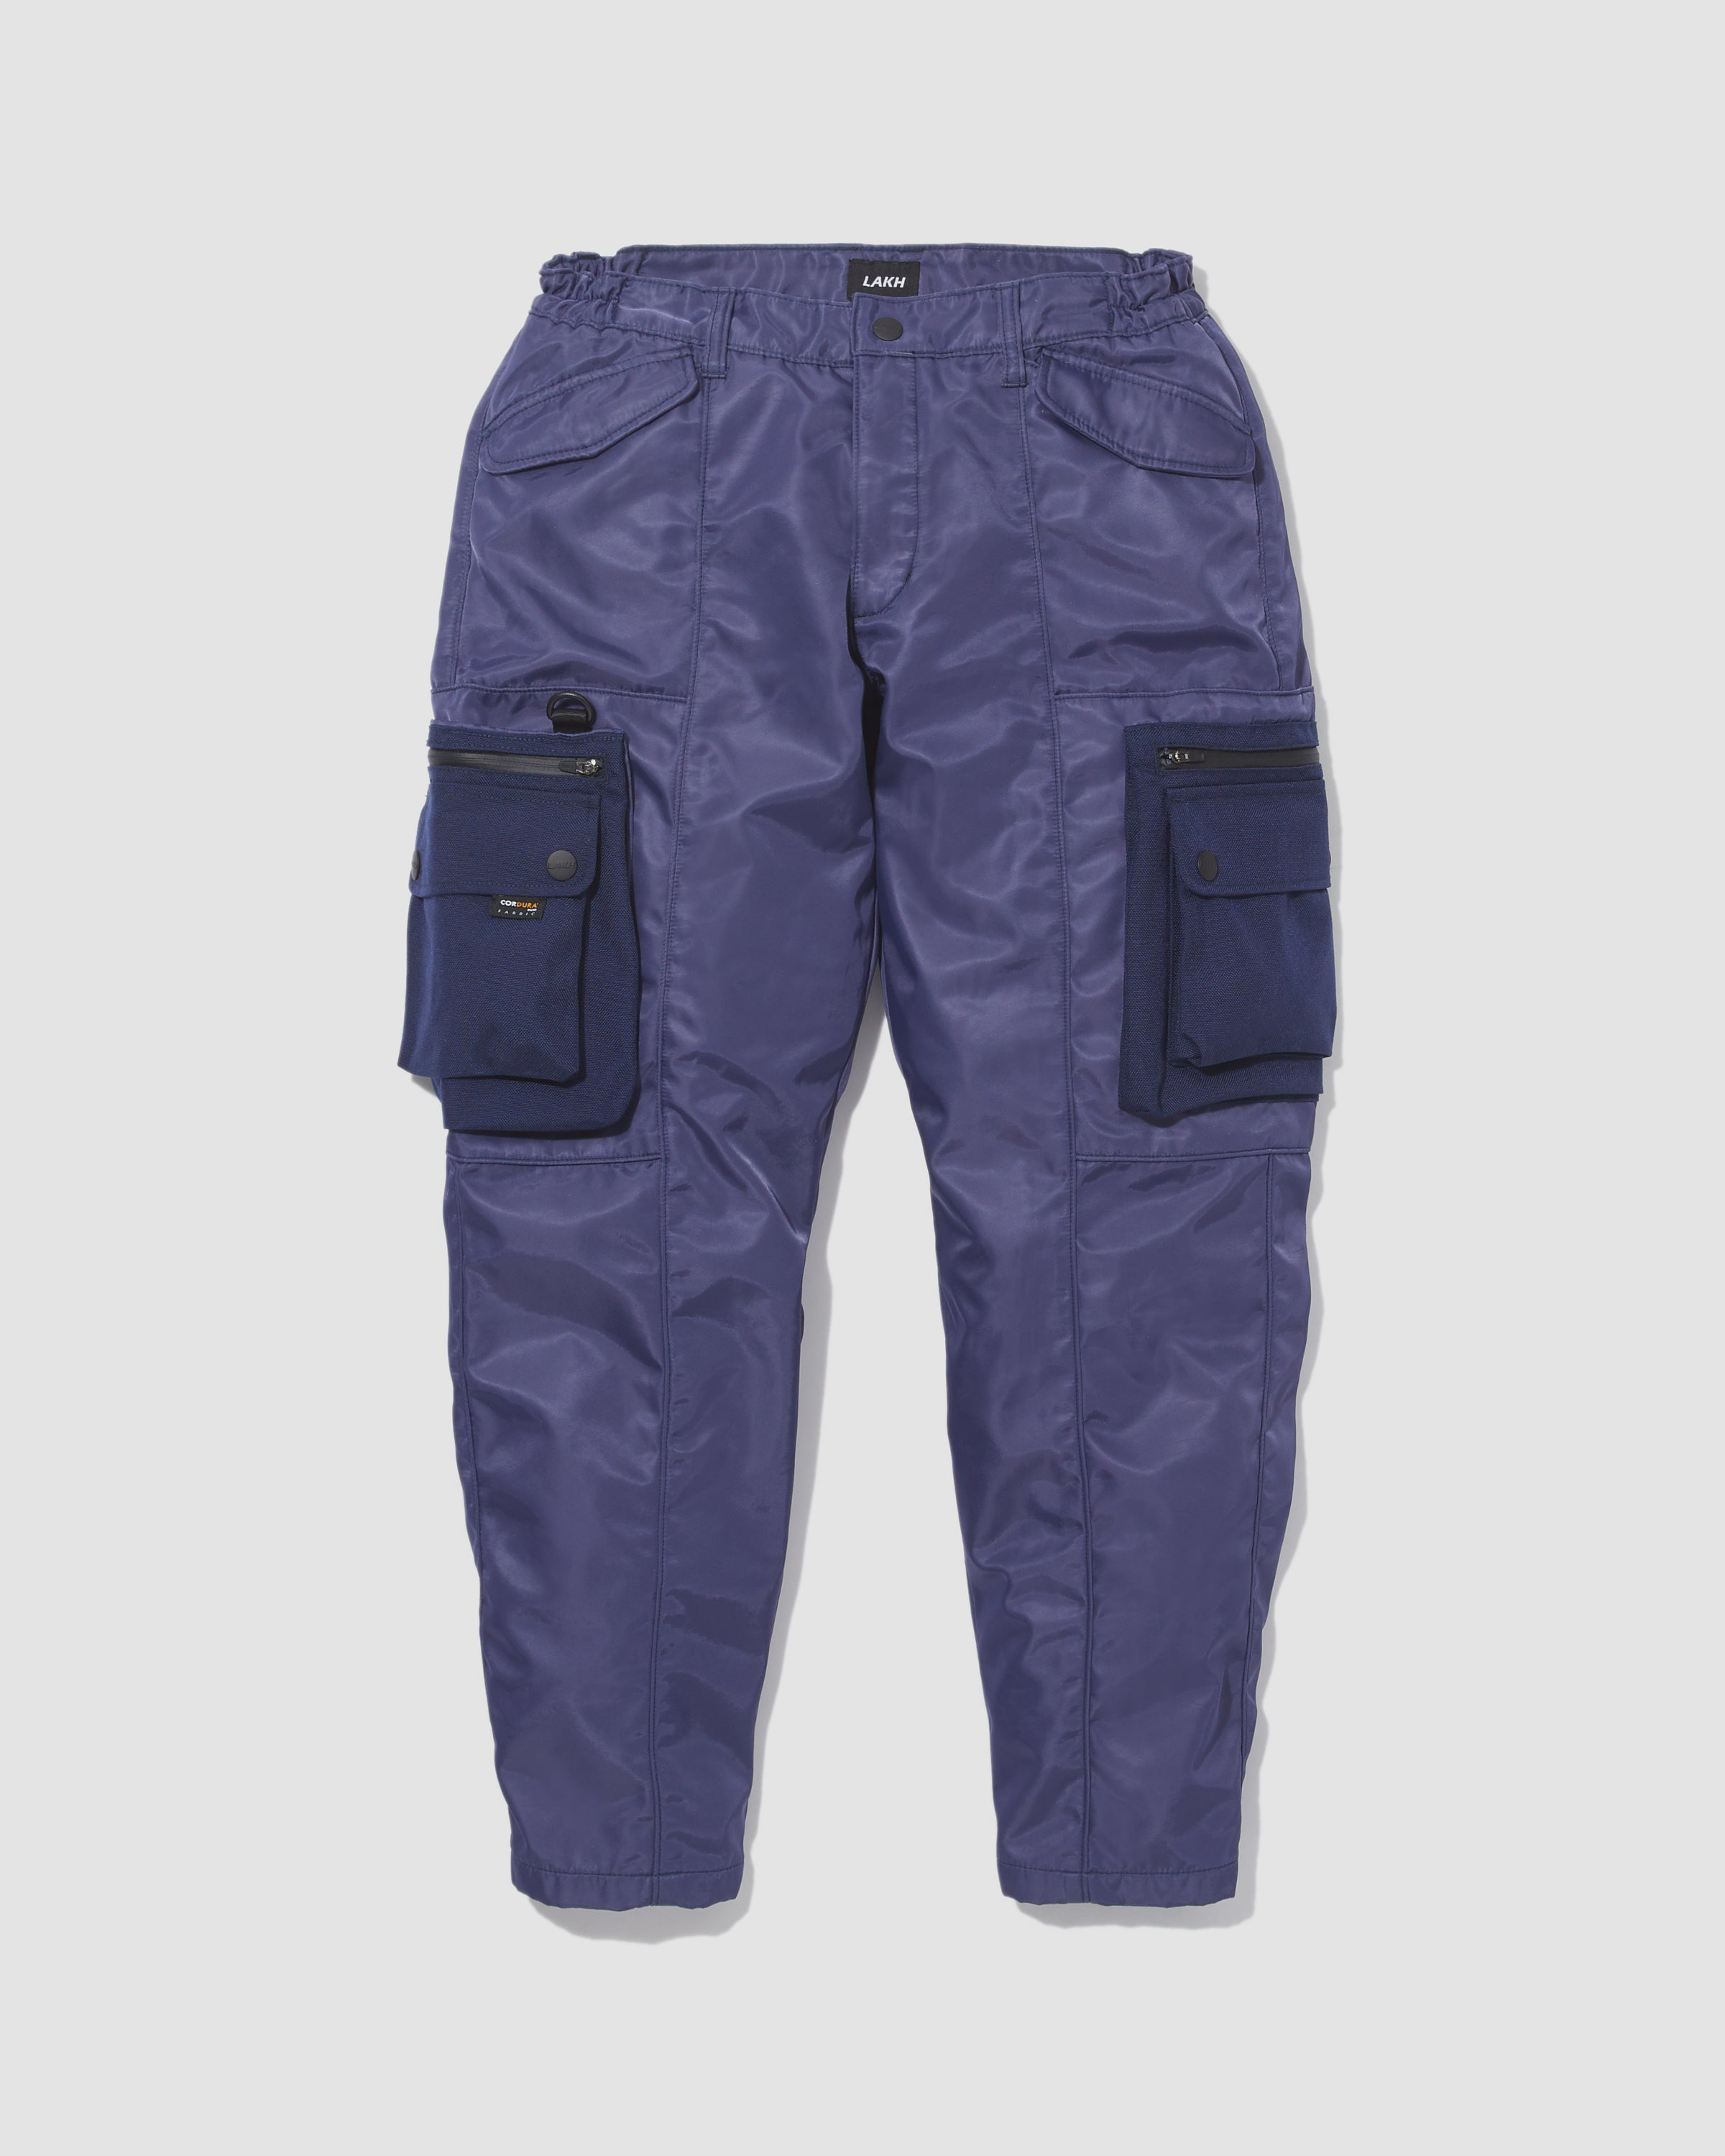 Techwear Pants - Navy